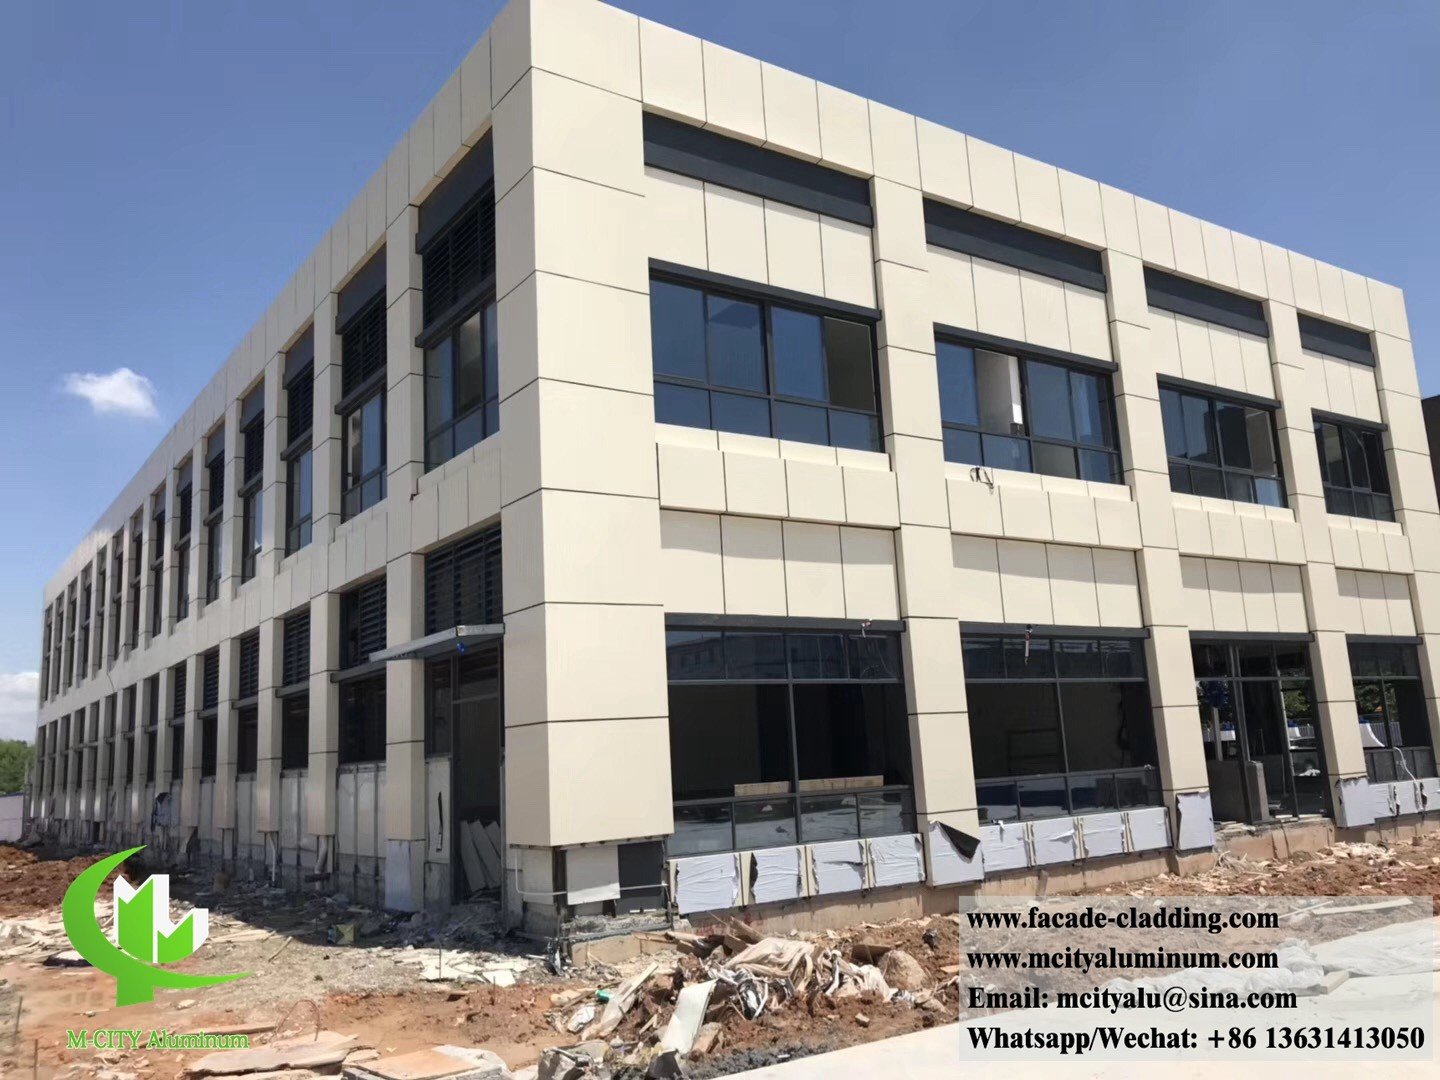 china latest news about M-City Aluminum cladding project have done, locoated in Philippines